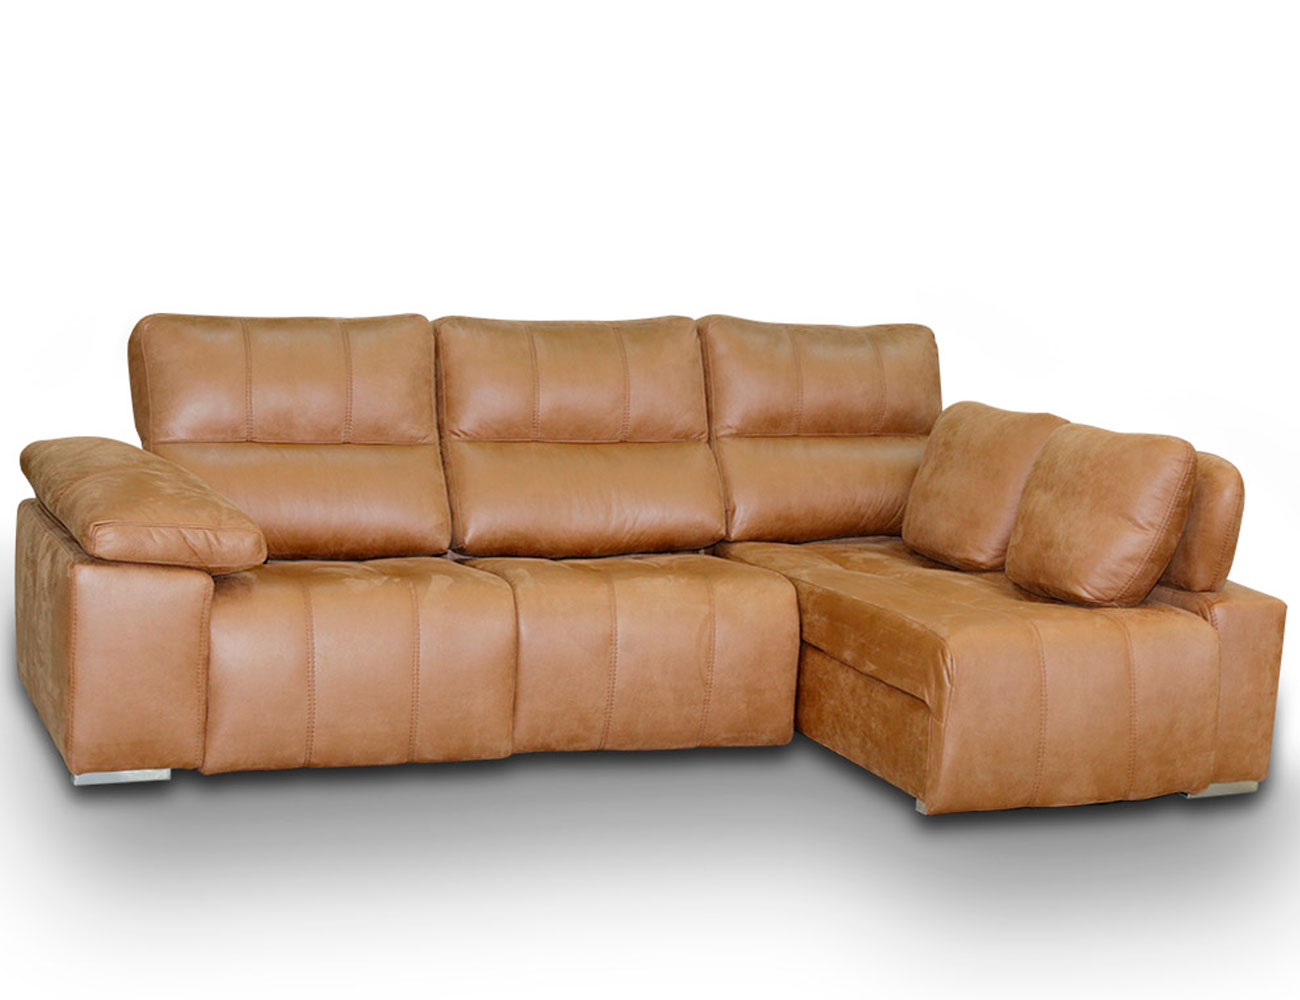 Sofa chaiselongue relax 2 motores anti manchas38